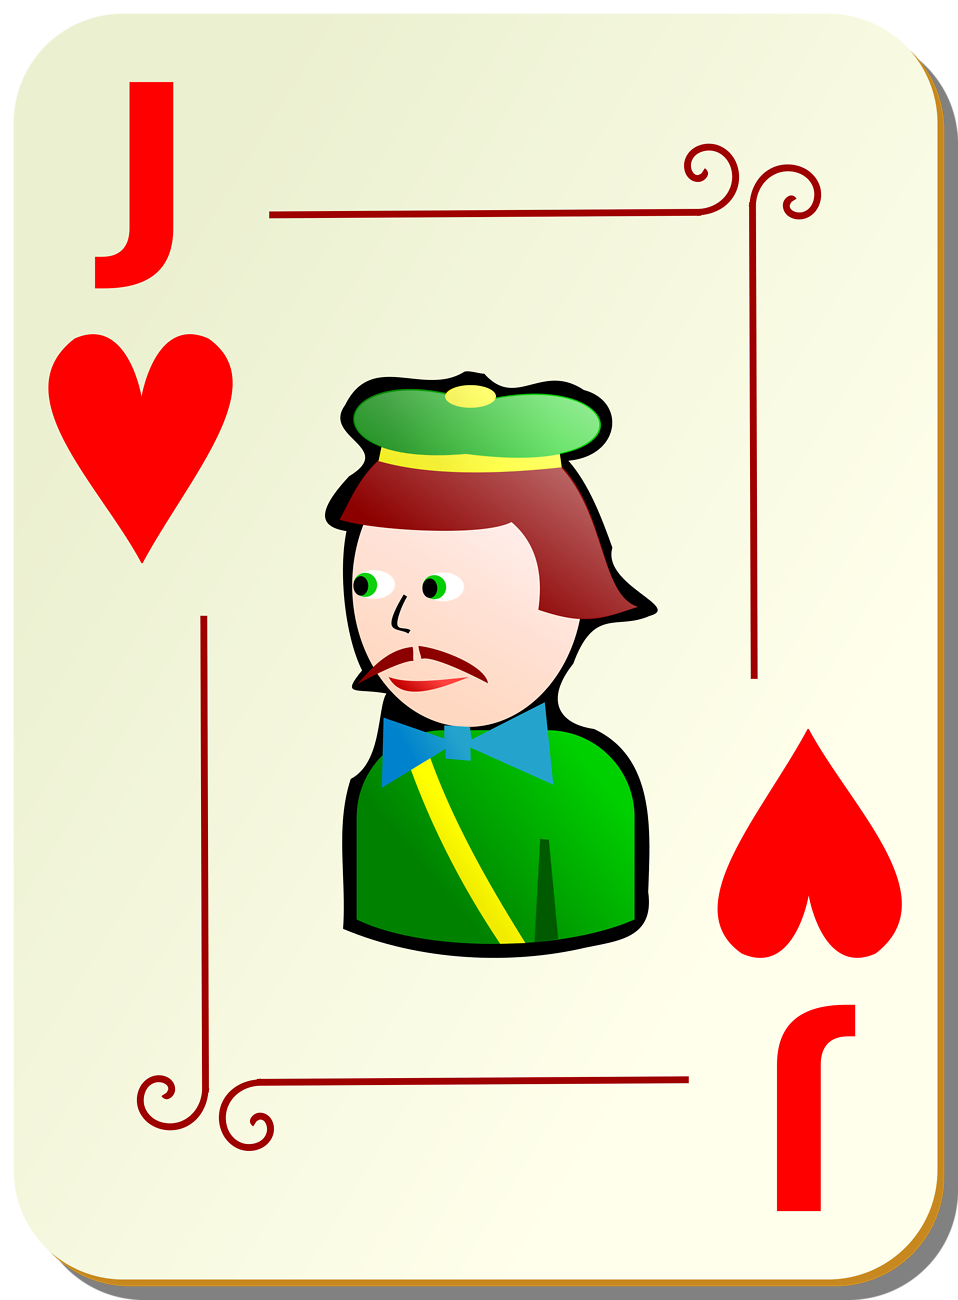 Clipart of jack of hearts card clip art transparent download Playing Cards | Free Stock Photo | Illustration of a Jack of Hearts ... clip art transparent download